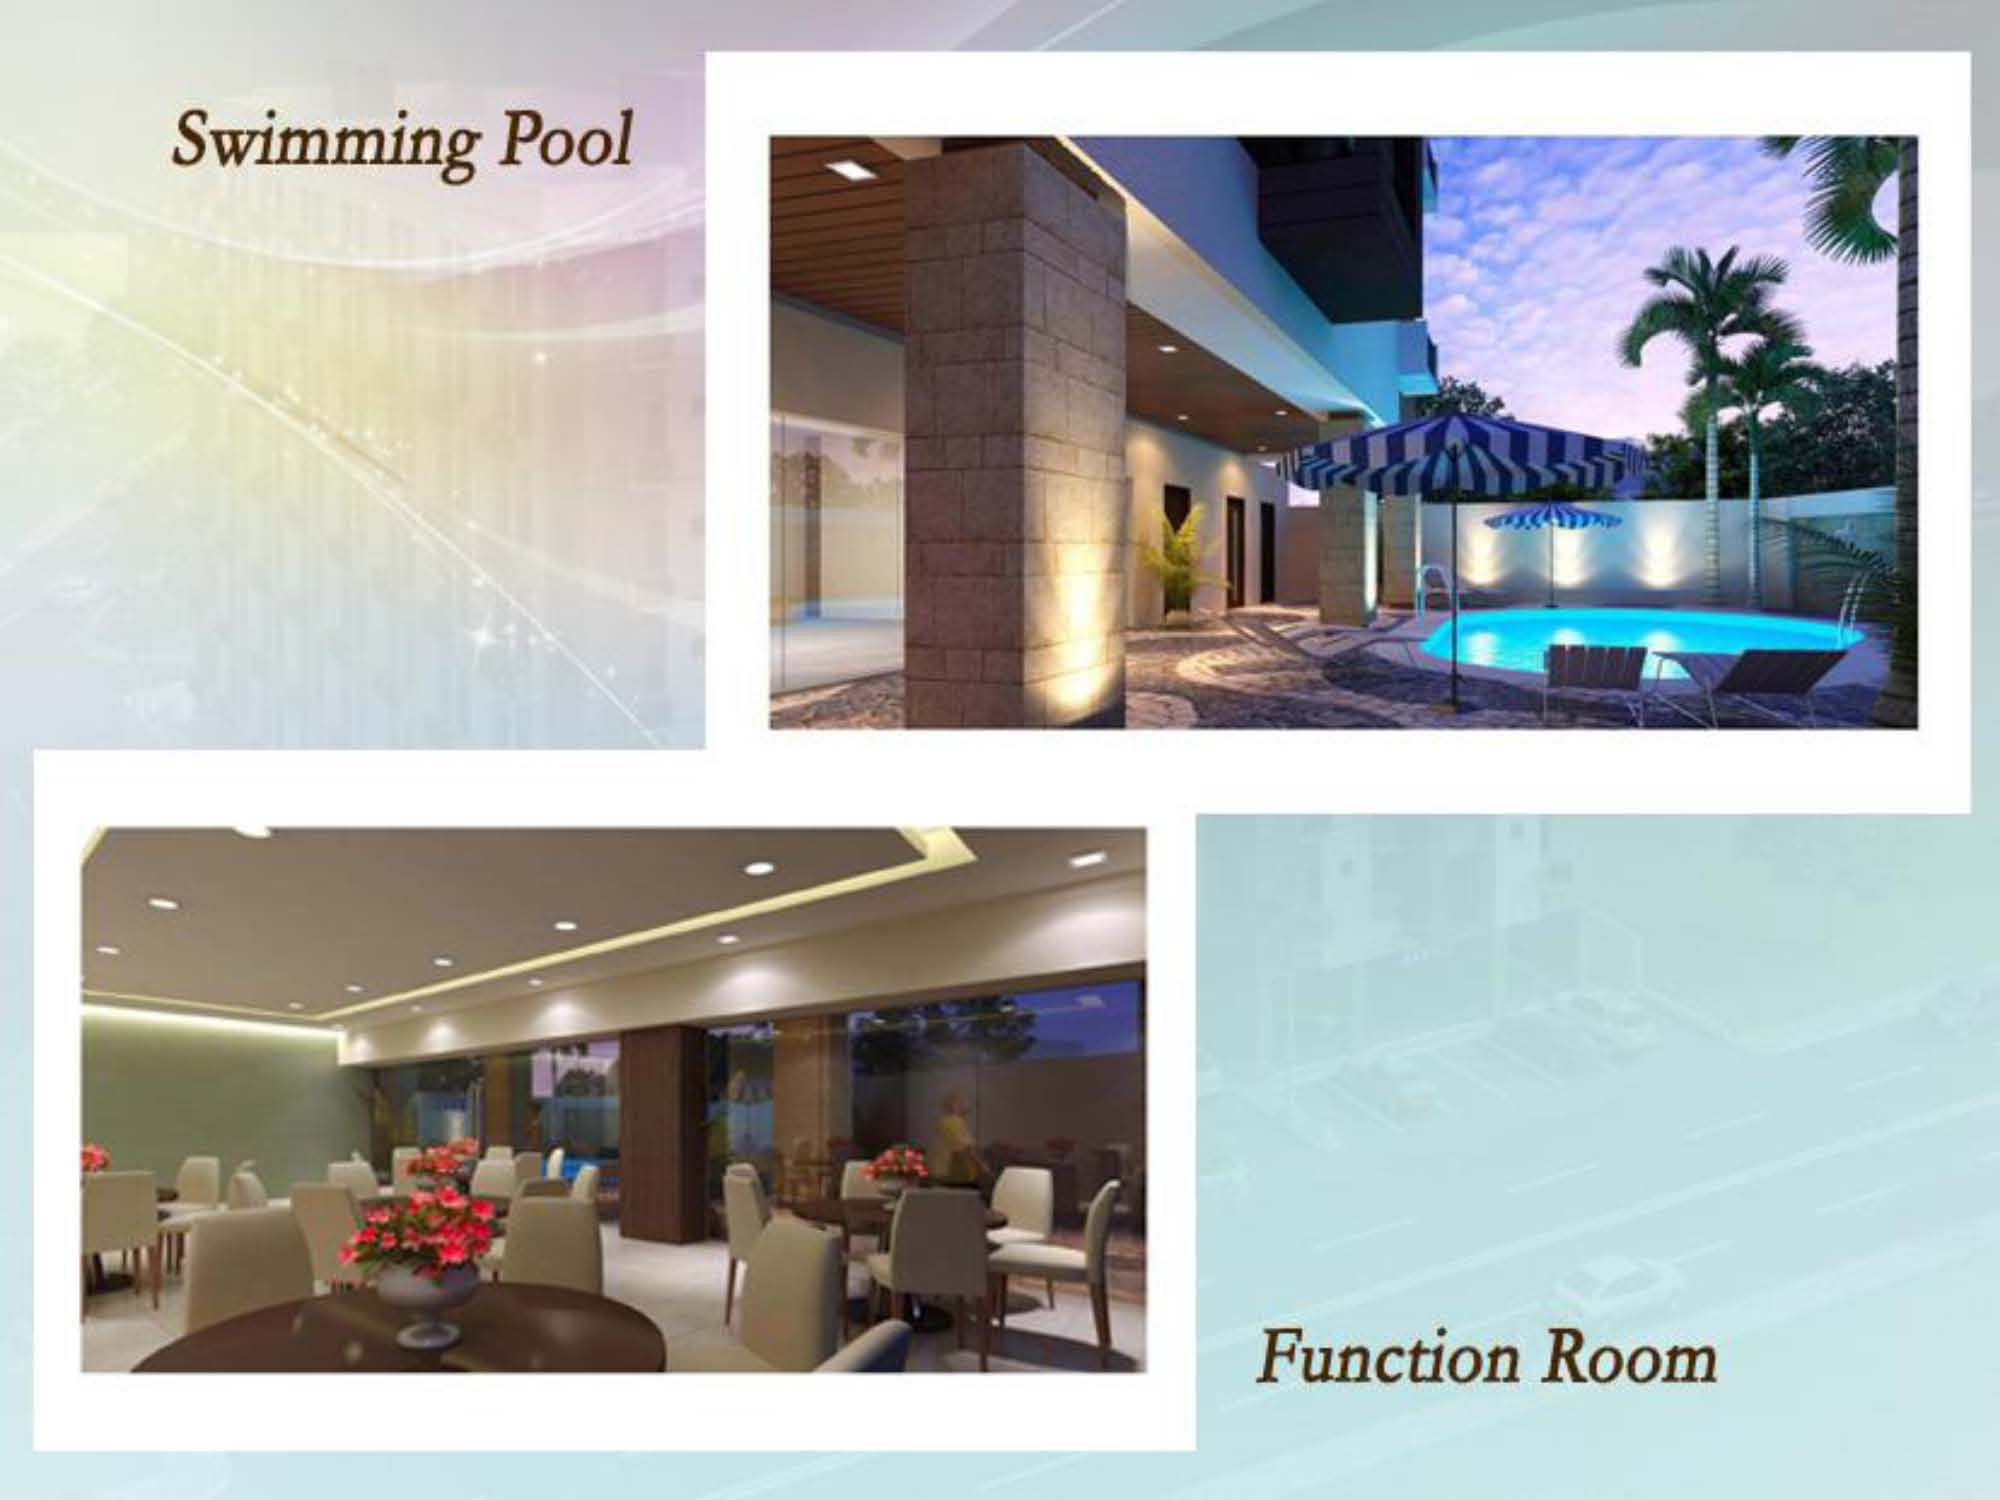 Swimming Pool and Function Room